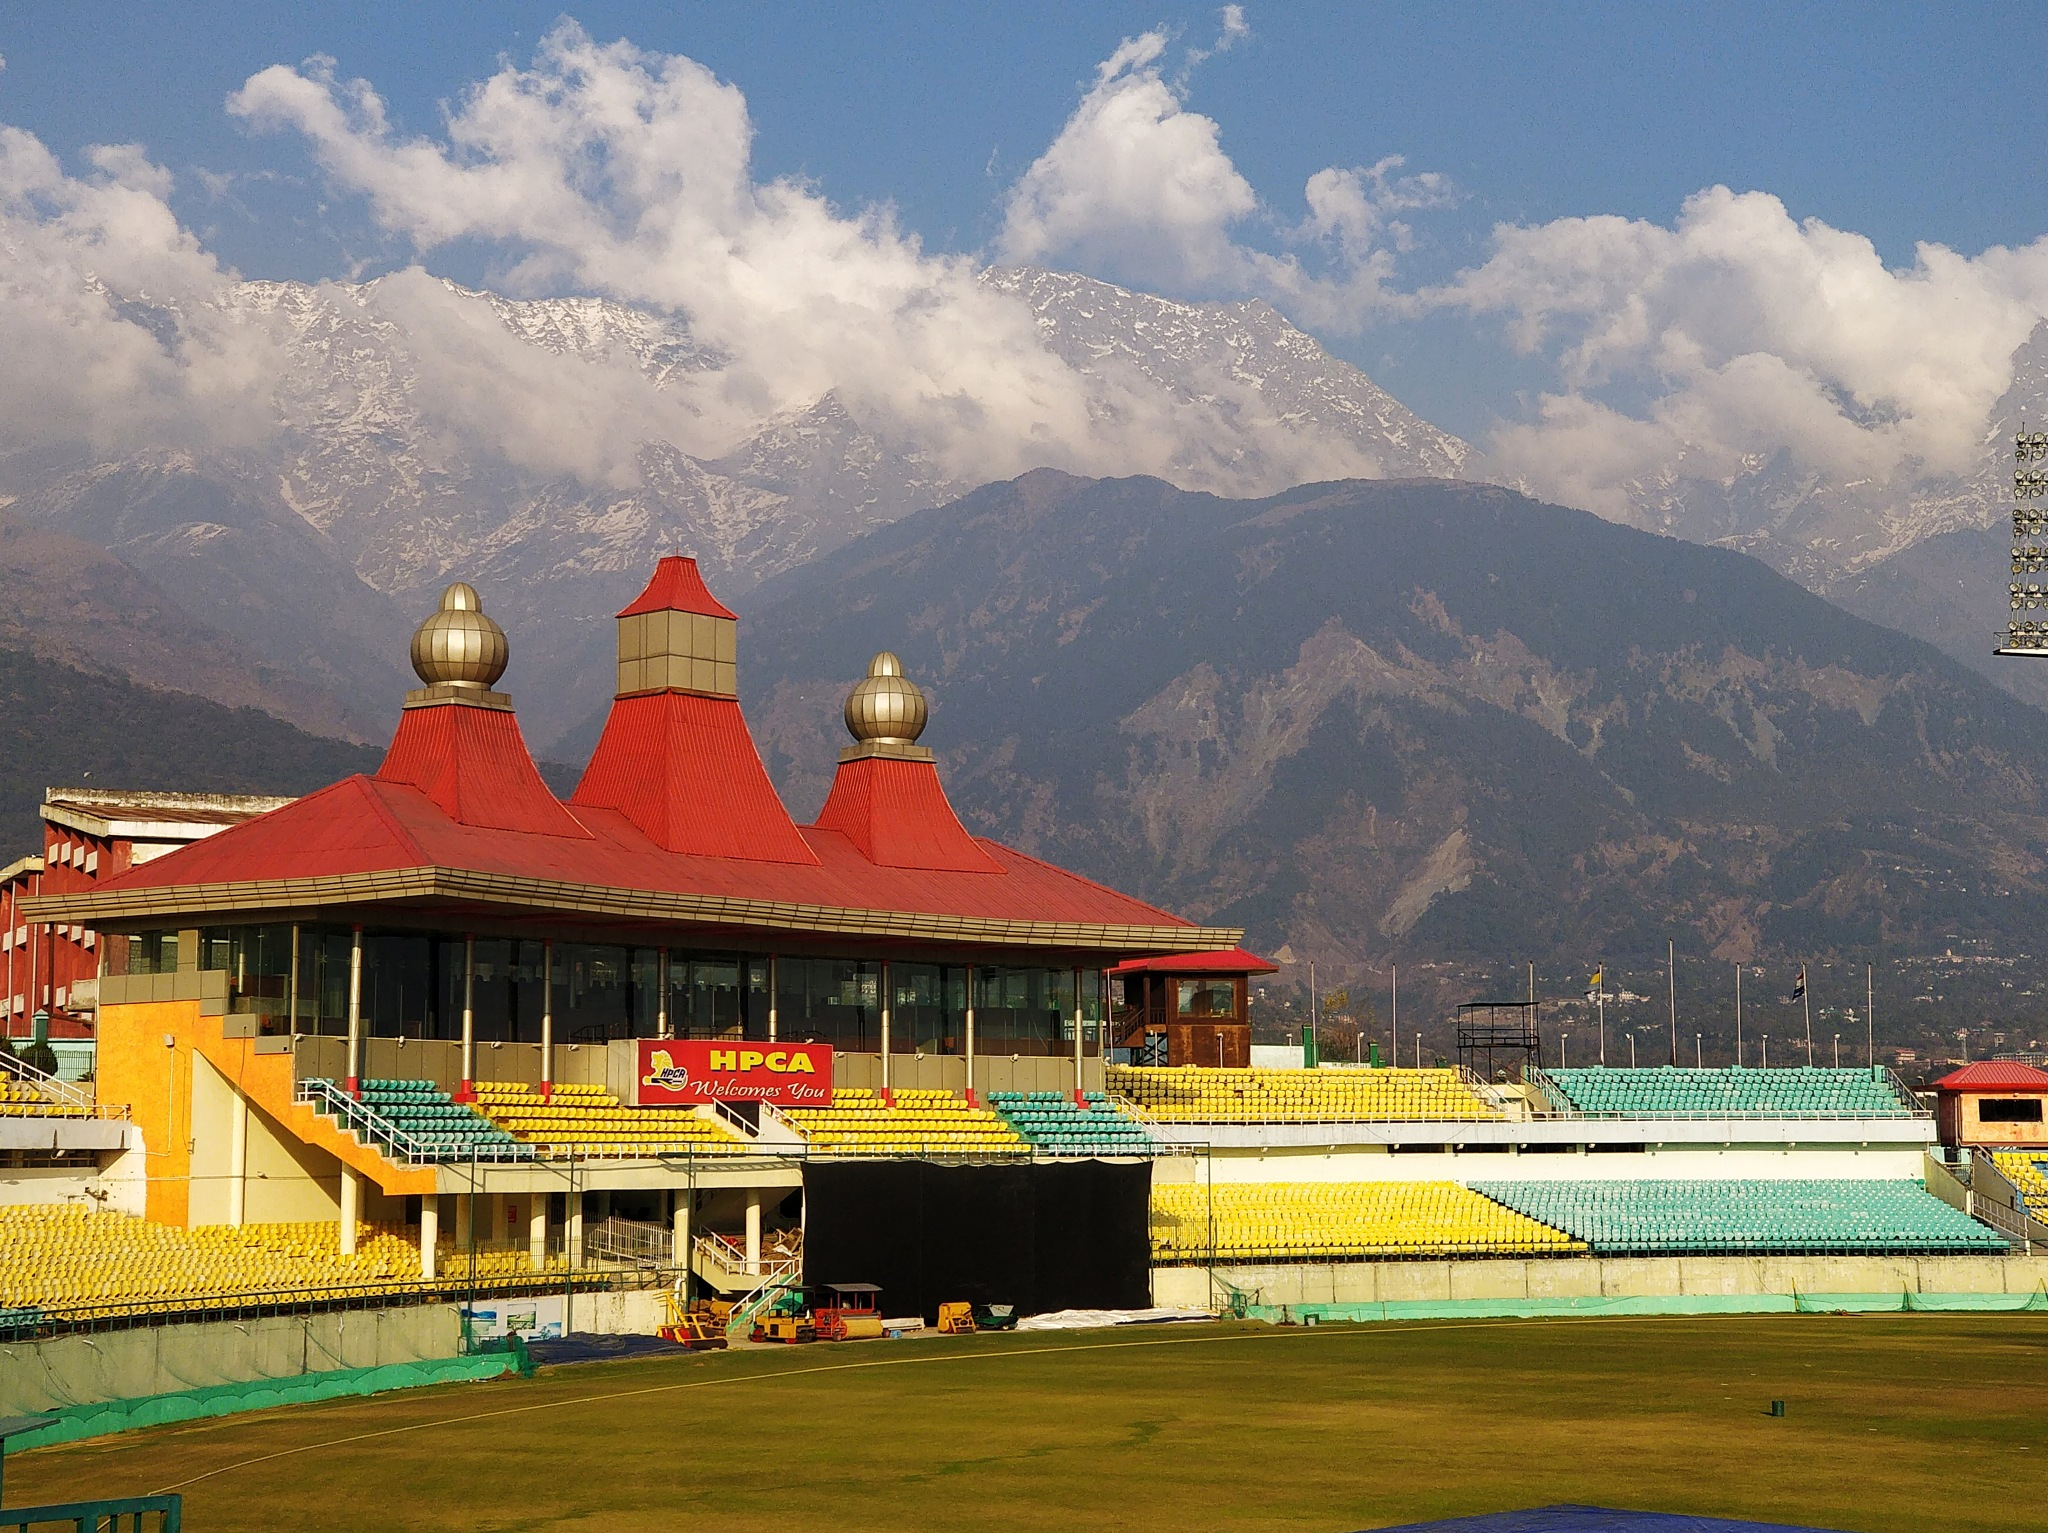 Dharamshala Cricket Stadium by Aman Chaudhary